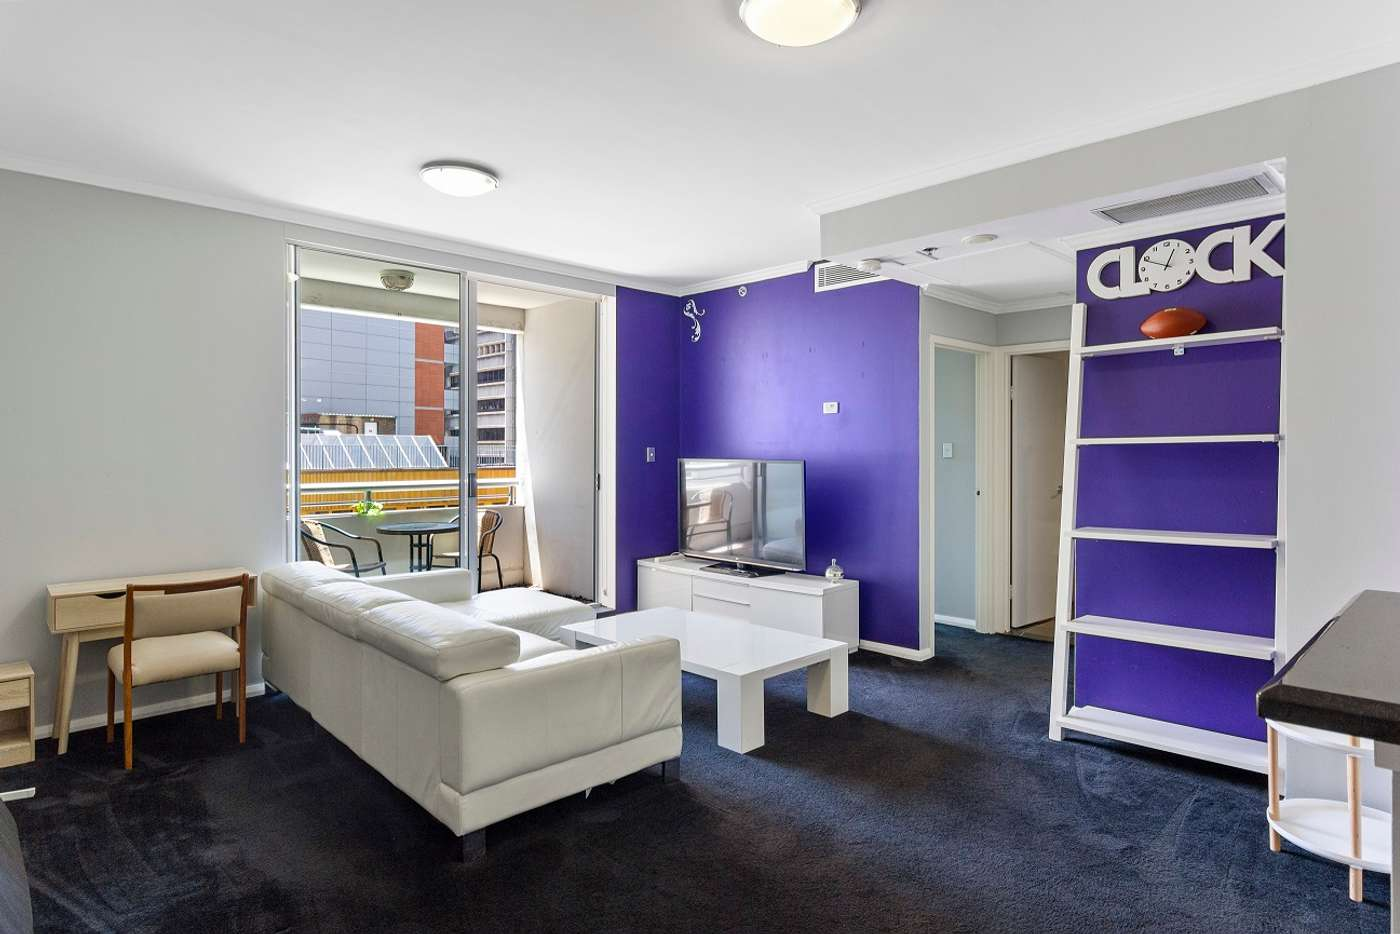 Main view of Homely apartment listing, 236/298 Sussex Street, Sydney NSW 2000